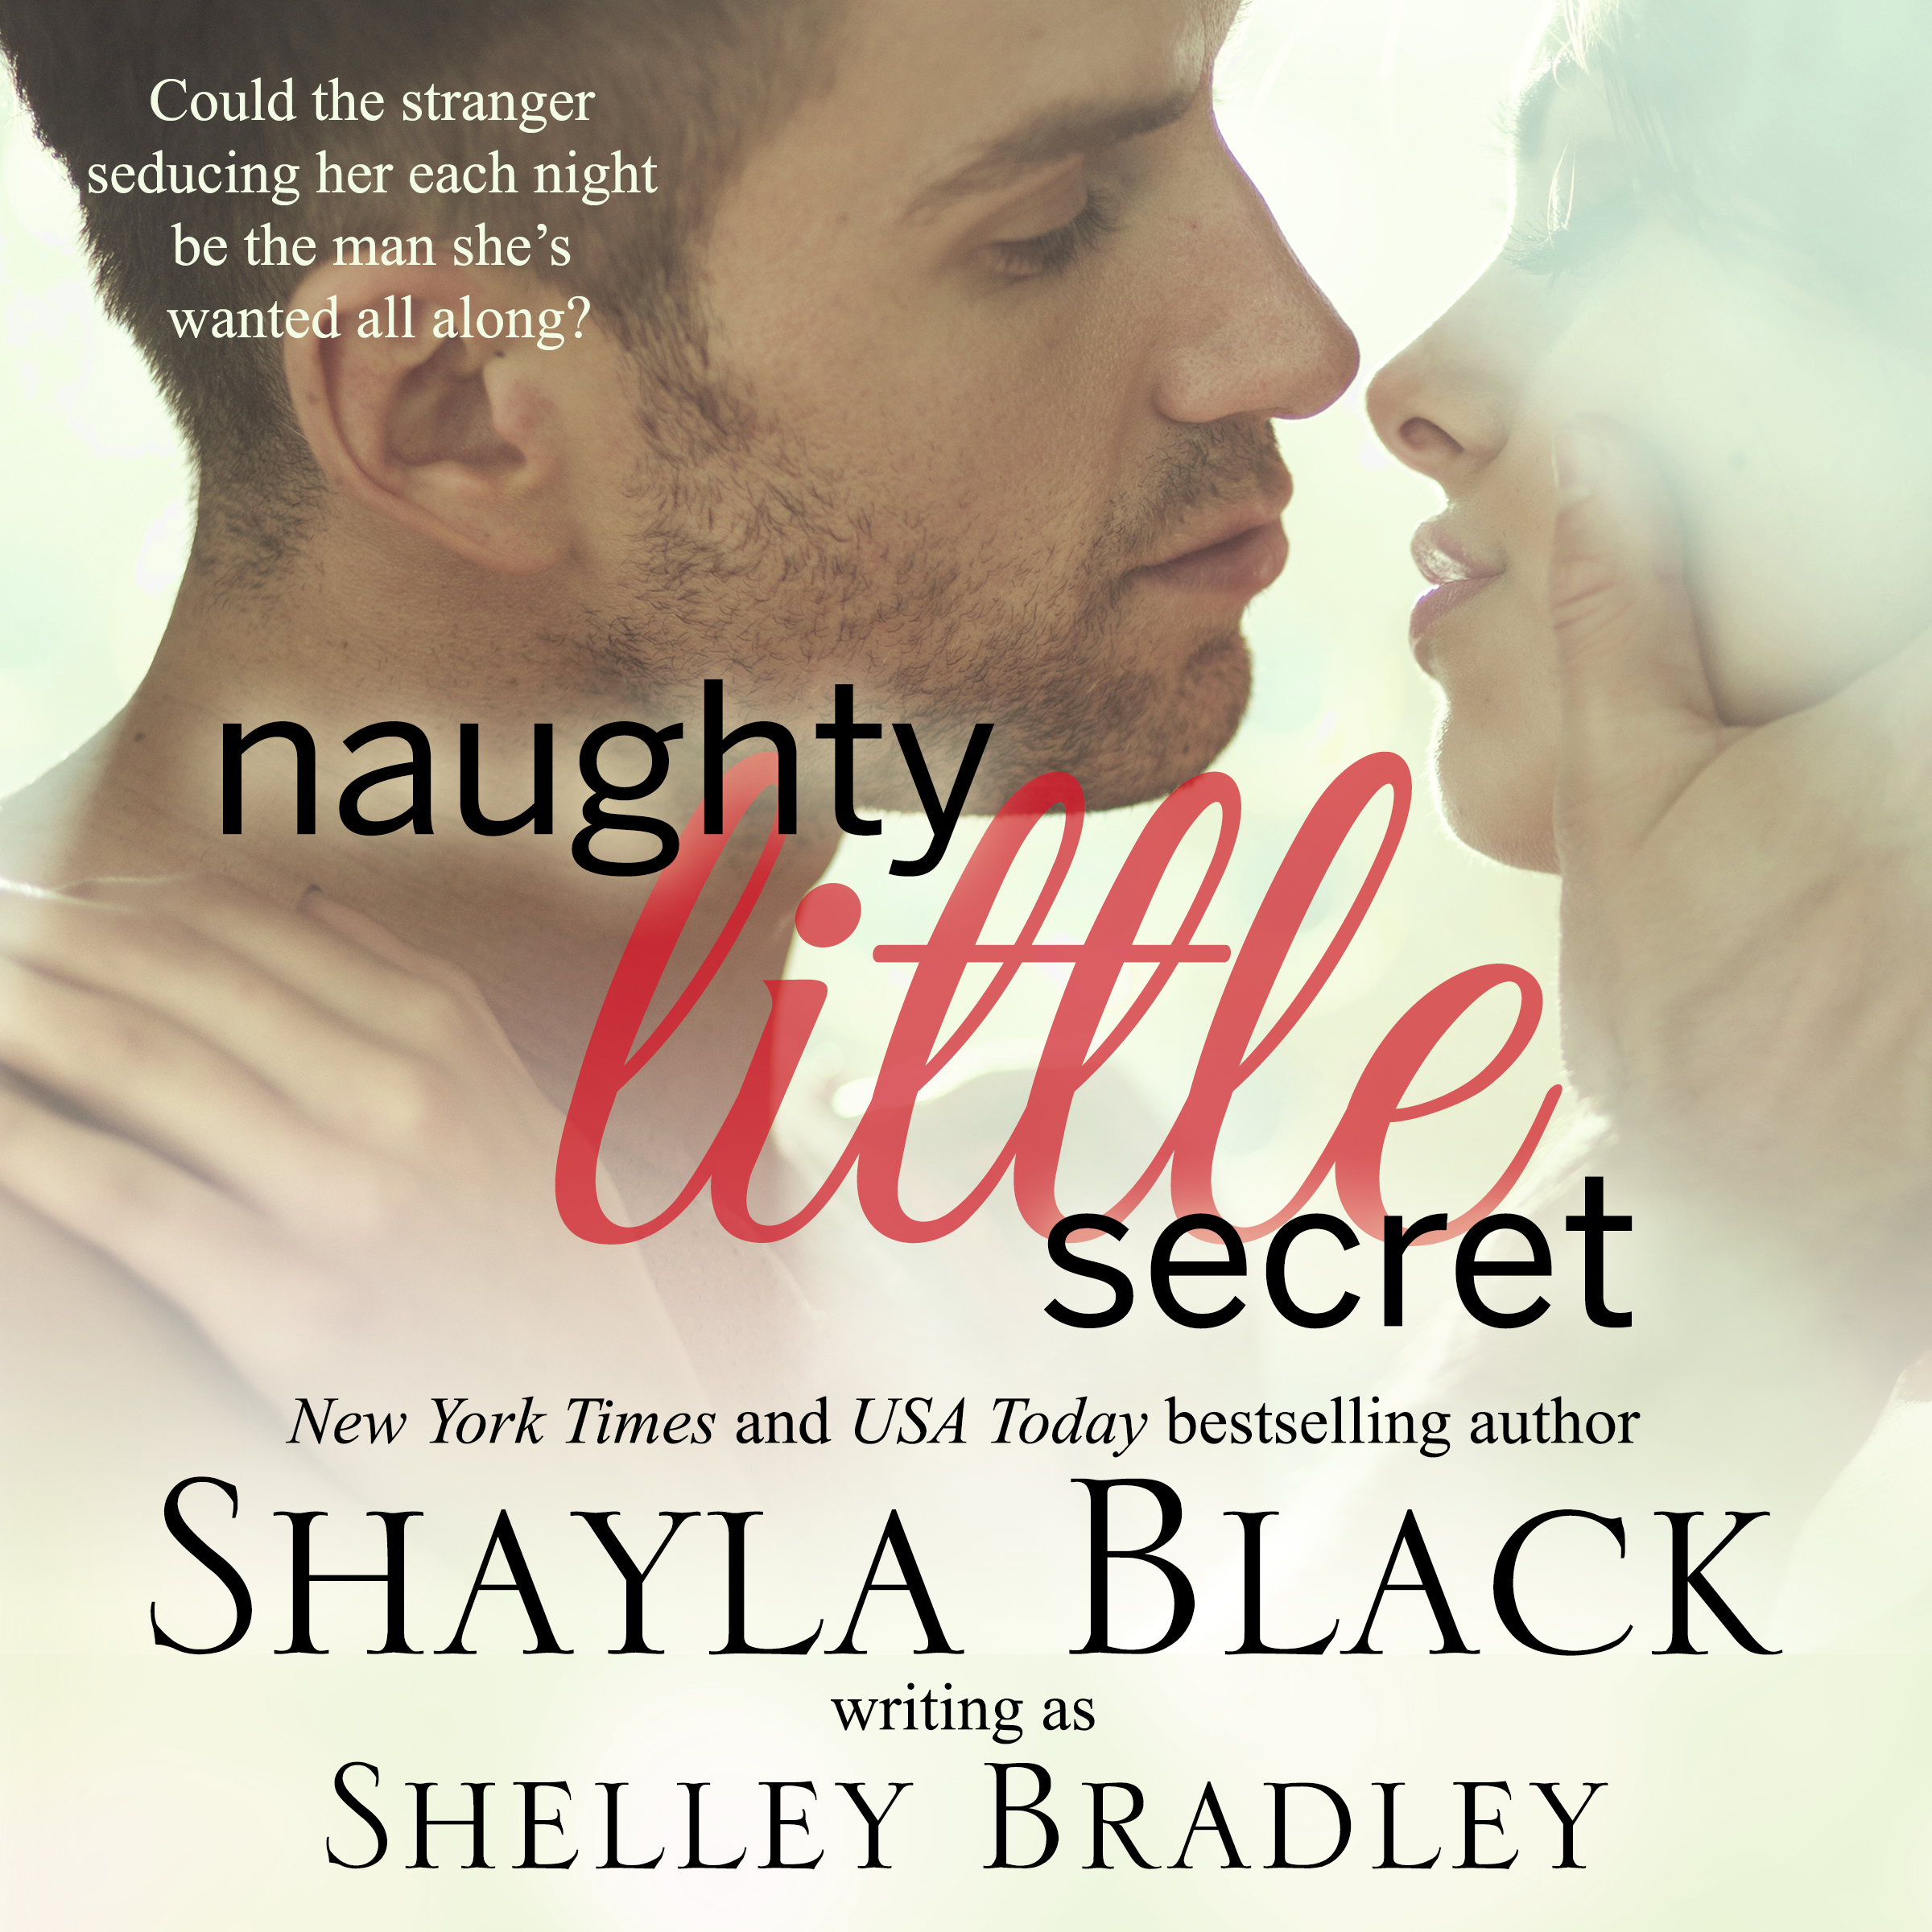 Naughty Little Secret cover image